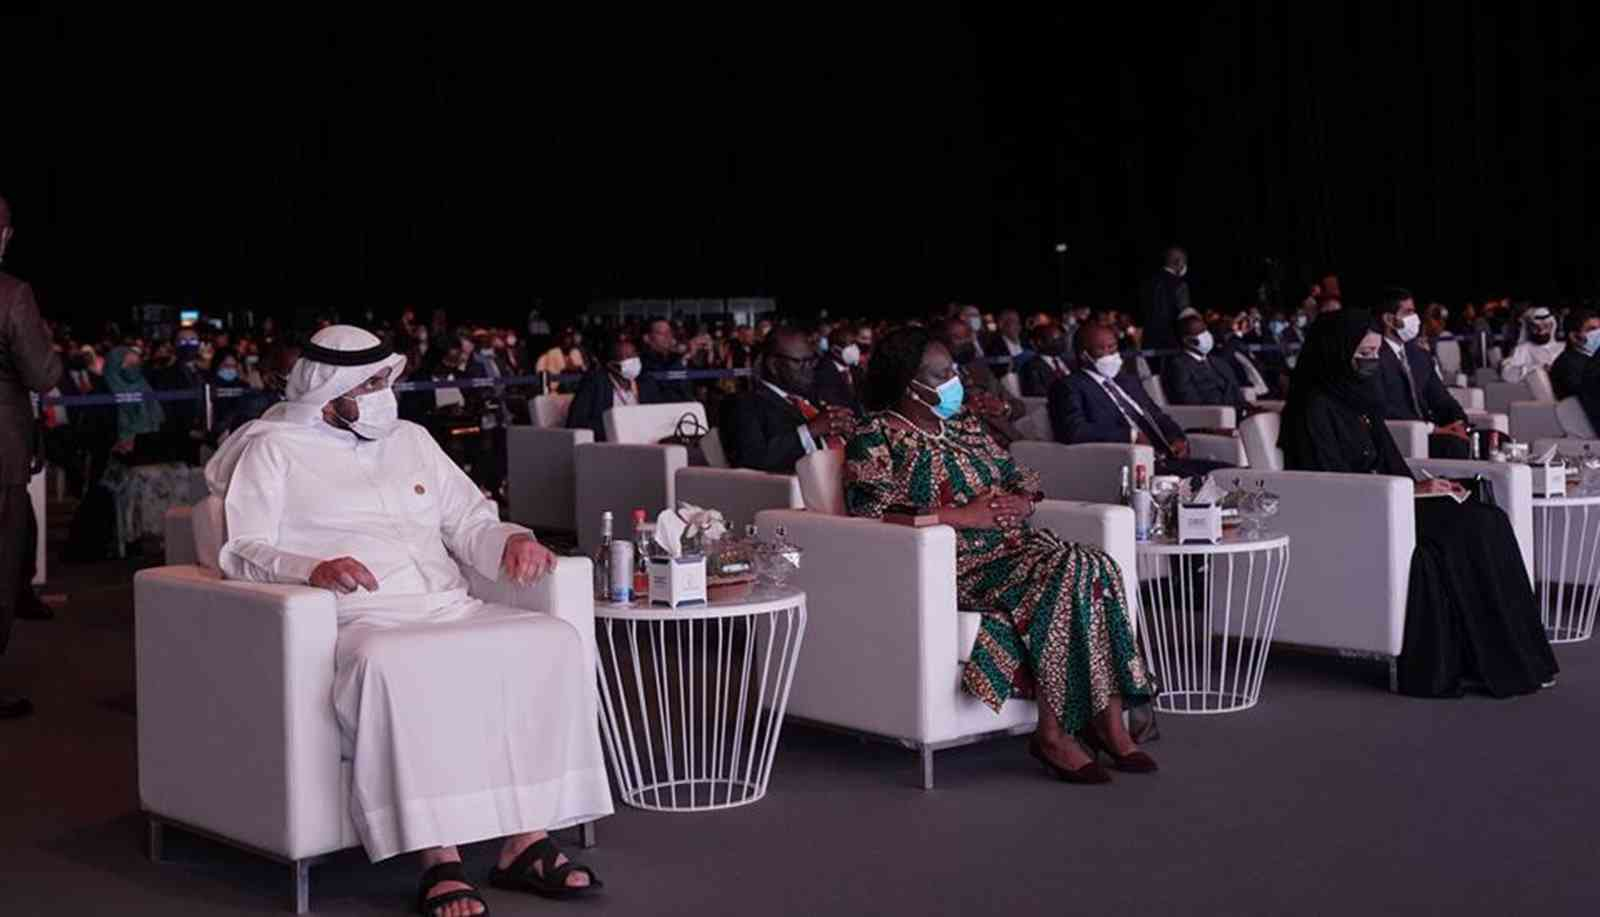 Hamdan bin Mohammed: We look forward to working with our partners in Africa to activate strategic cooperation paths